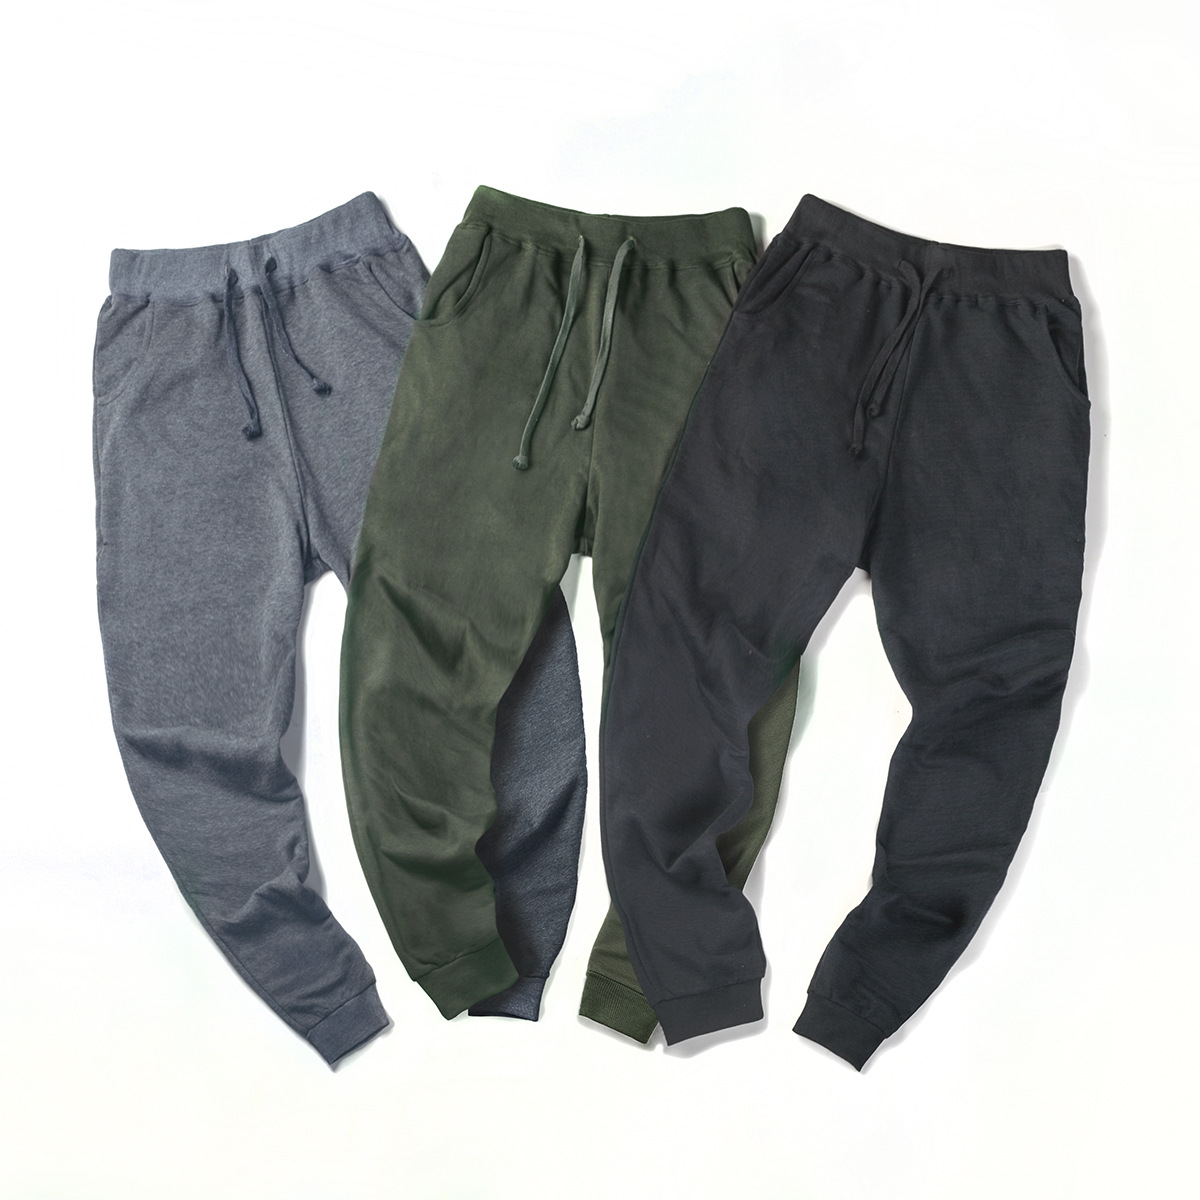 Hot Selling 2019 New Style Spring Extra Large Fashion MEN'S Sports Trousers Knitted Sweatpants Plus-sized Ankle Banded Pants